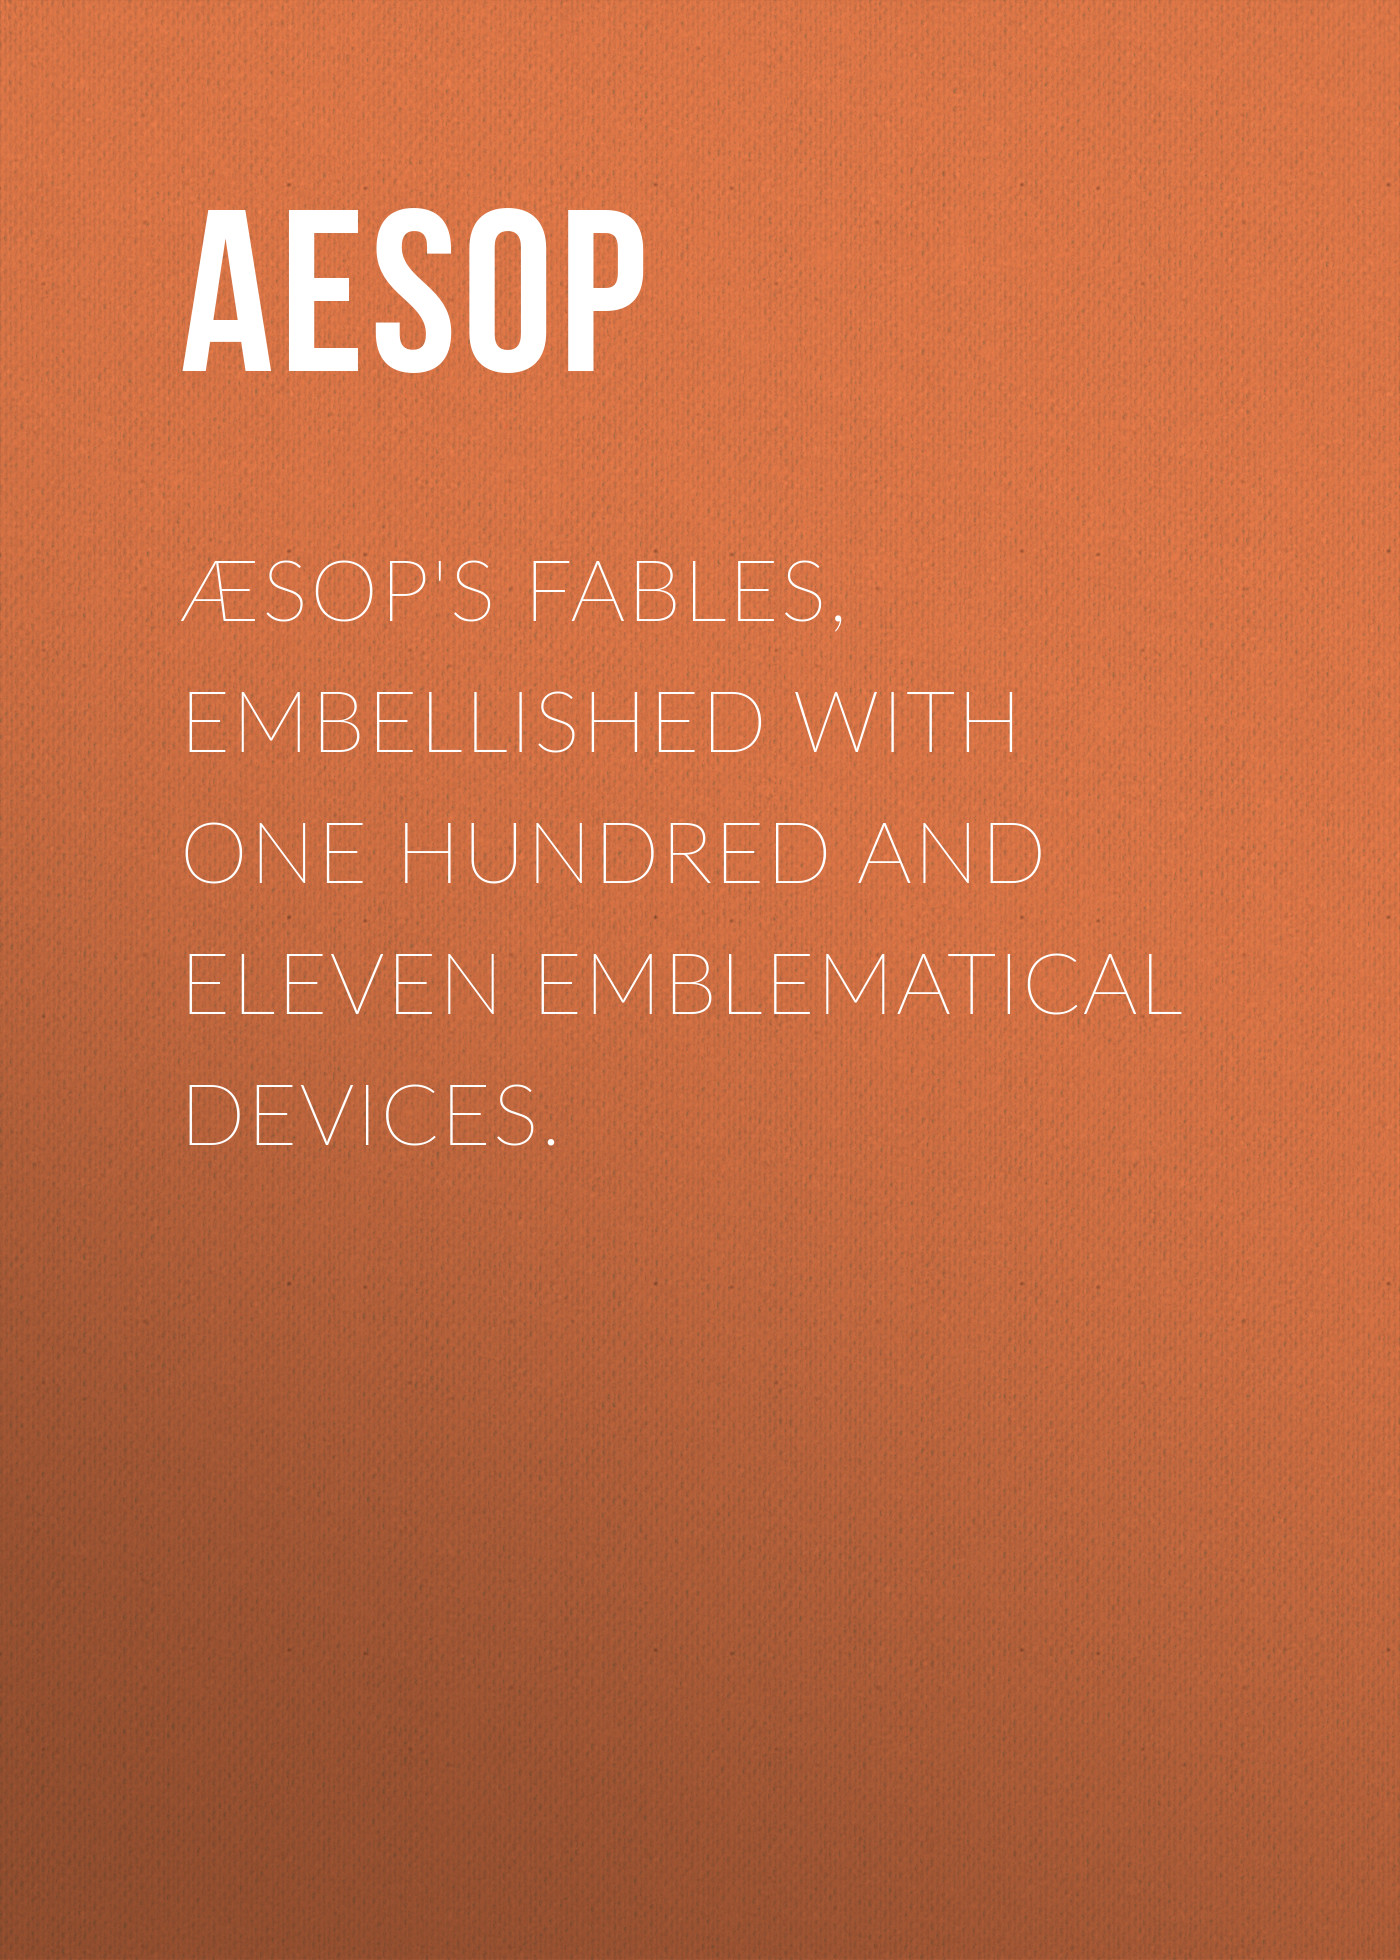 Aesop Æsop's Fables, Embellished with One Hundred and Eleven Emblematical Devices. graceful beads embellished lace ribbon necklace and bracelet for women